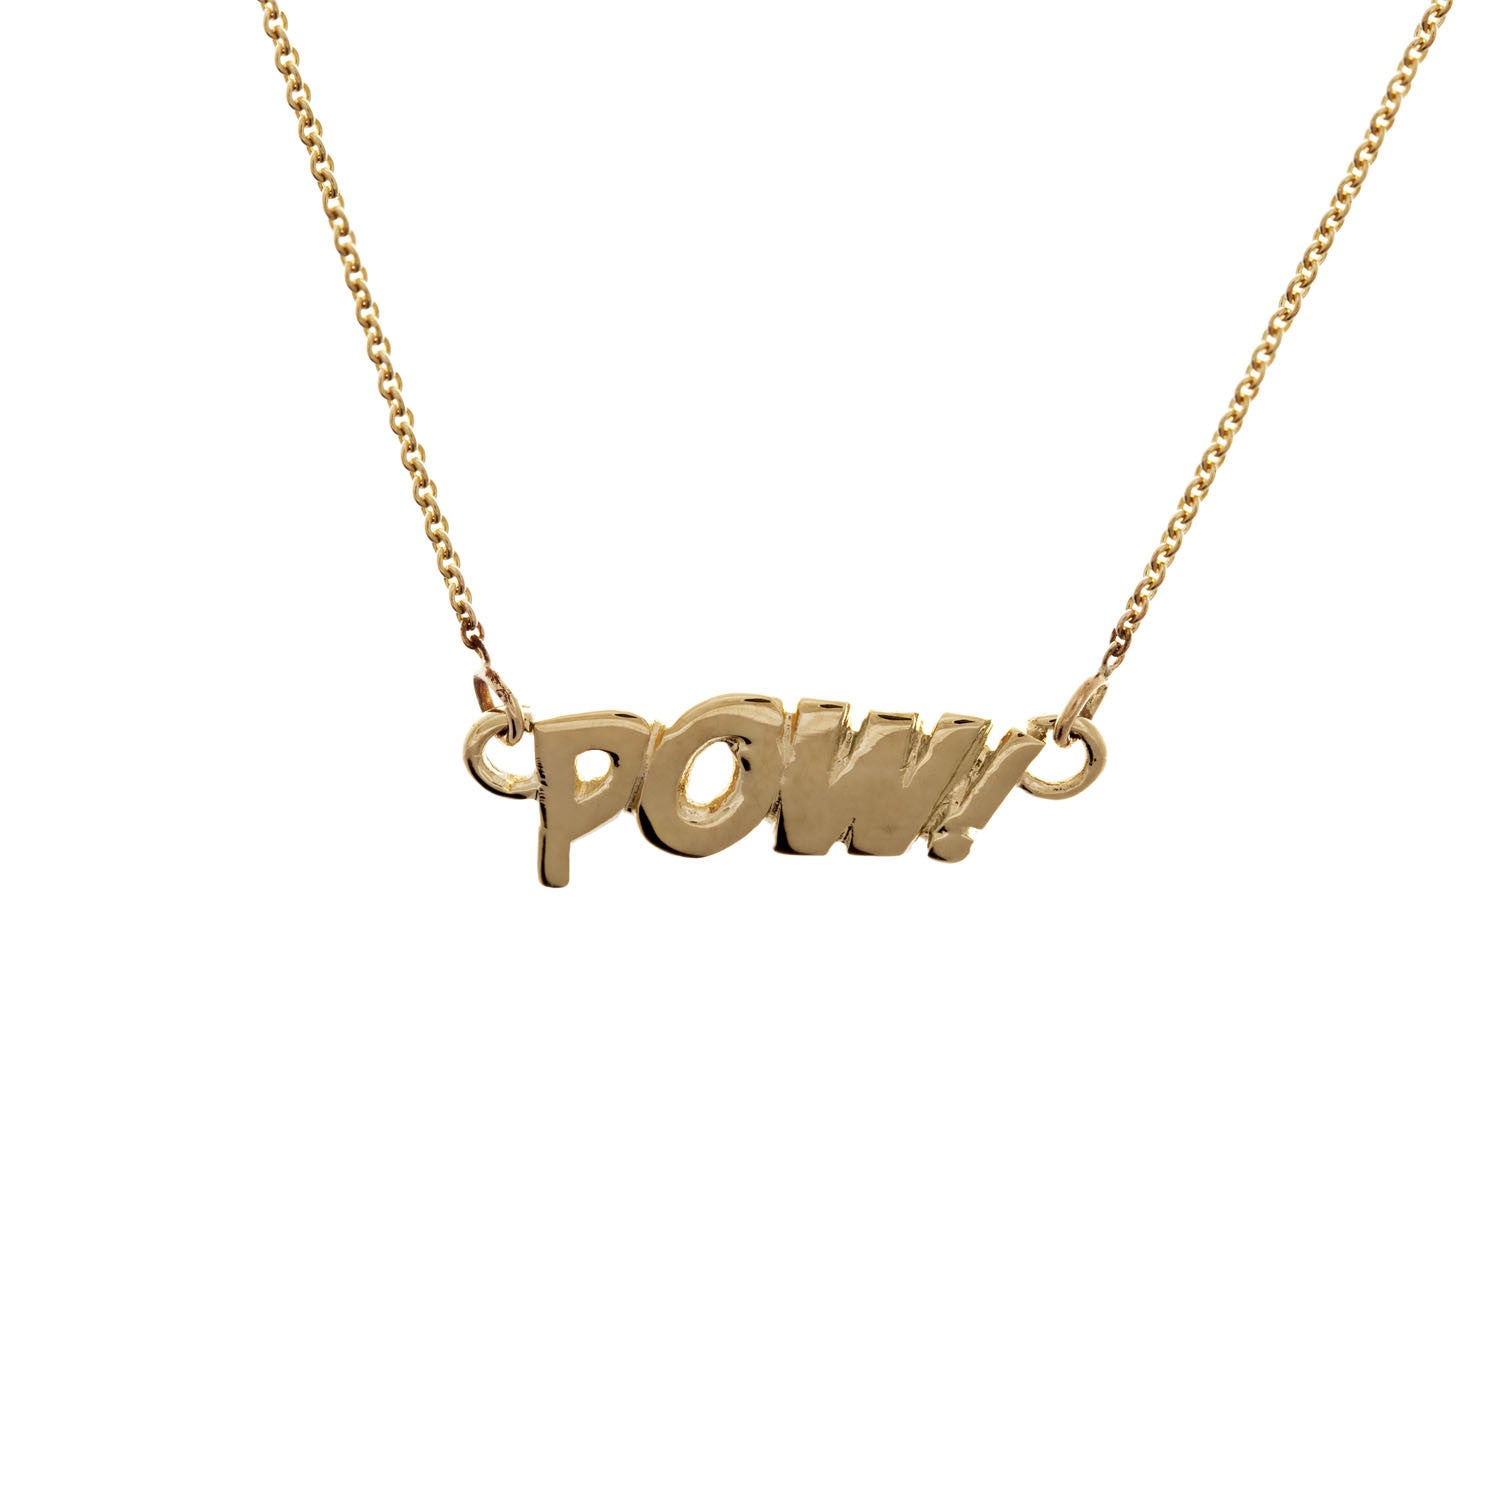 POW Letters Necklace in 14ct Gold